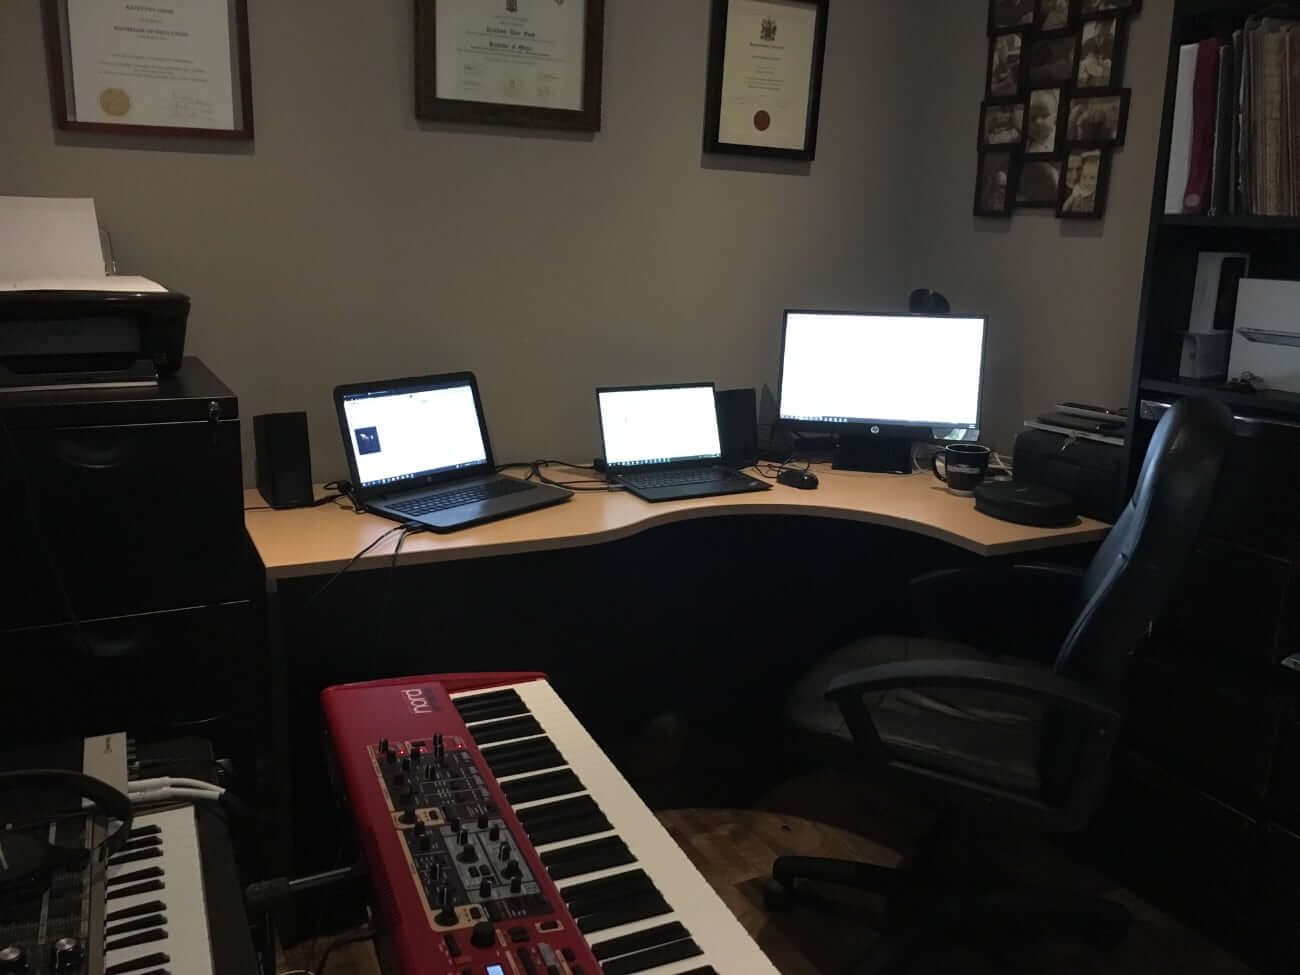 Image of Grant's desk and recording equipment